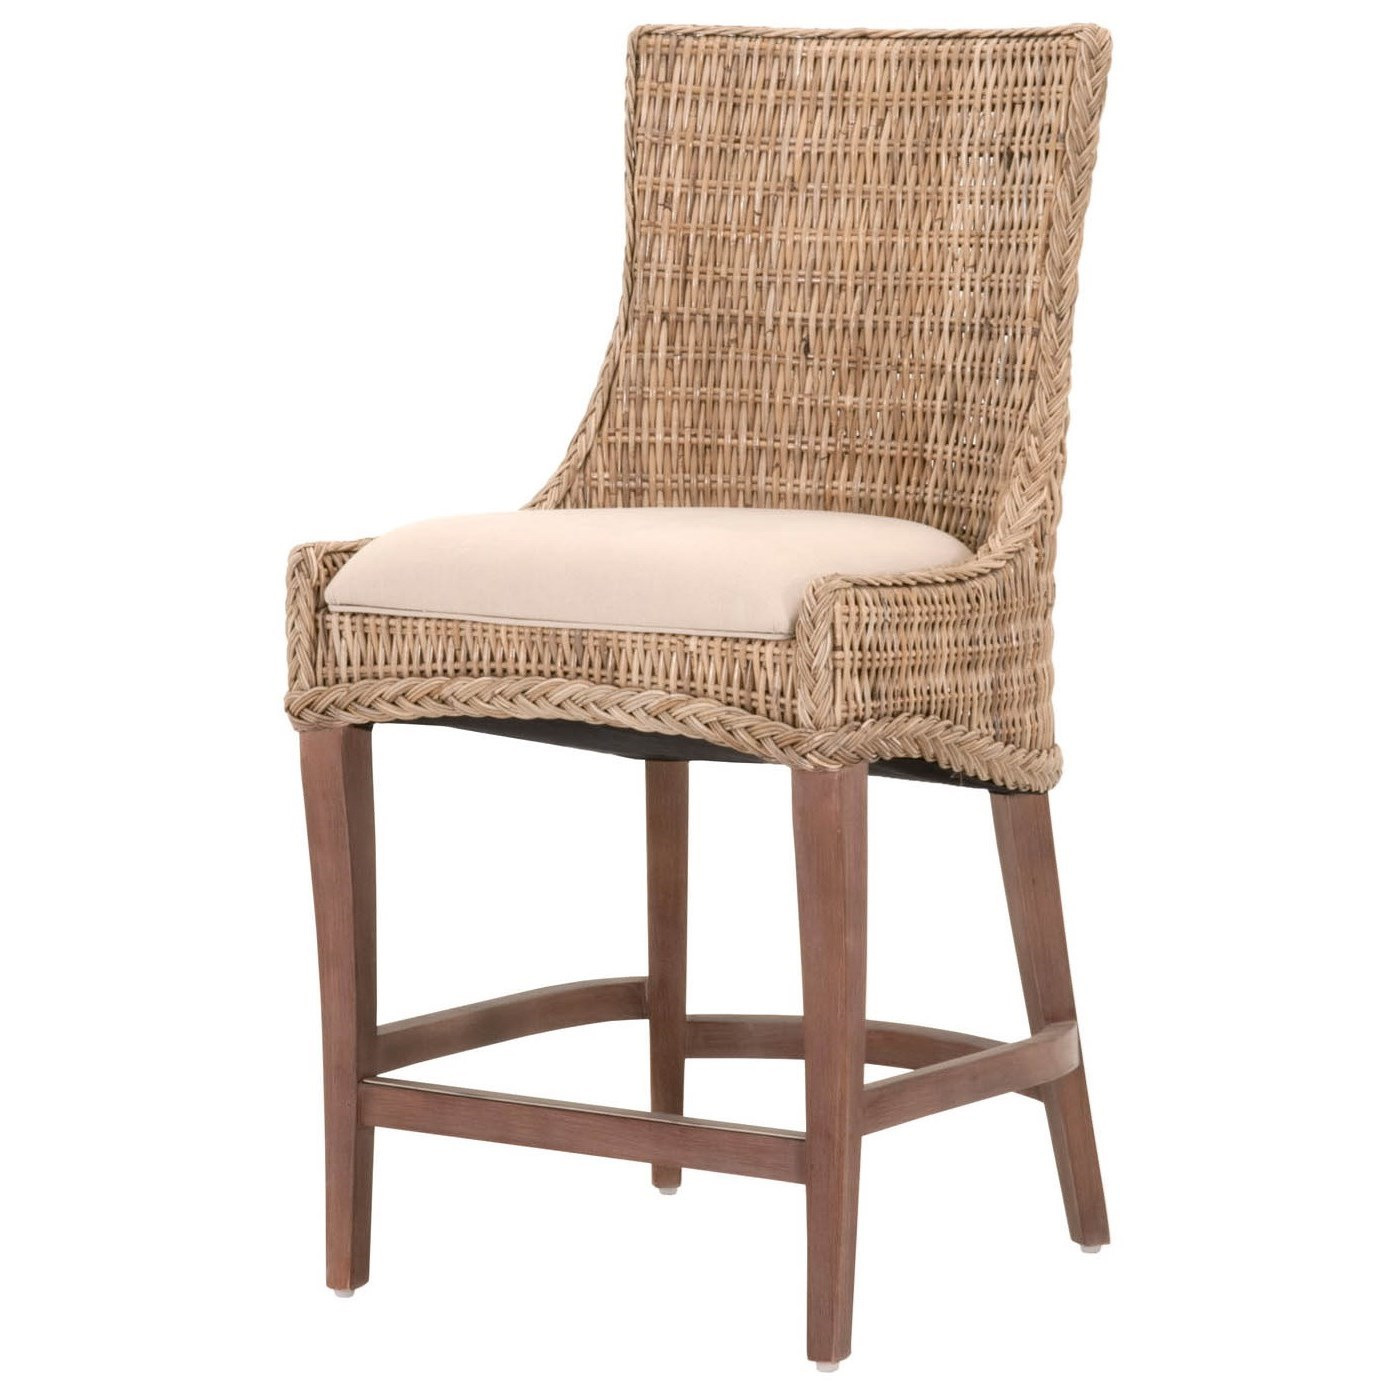 Orient Express Furniture Wicker 6814cs Gku Lgry Greco